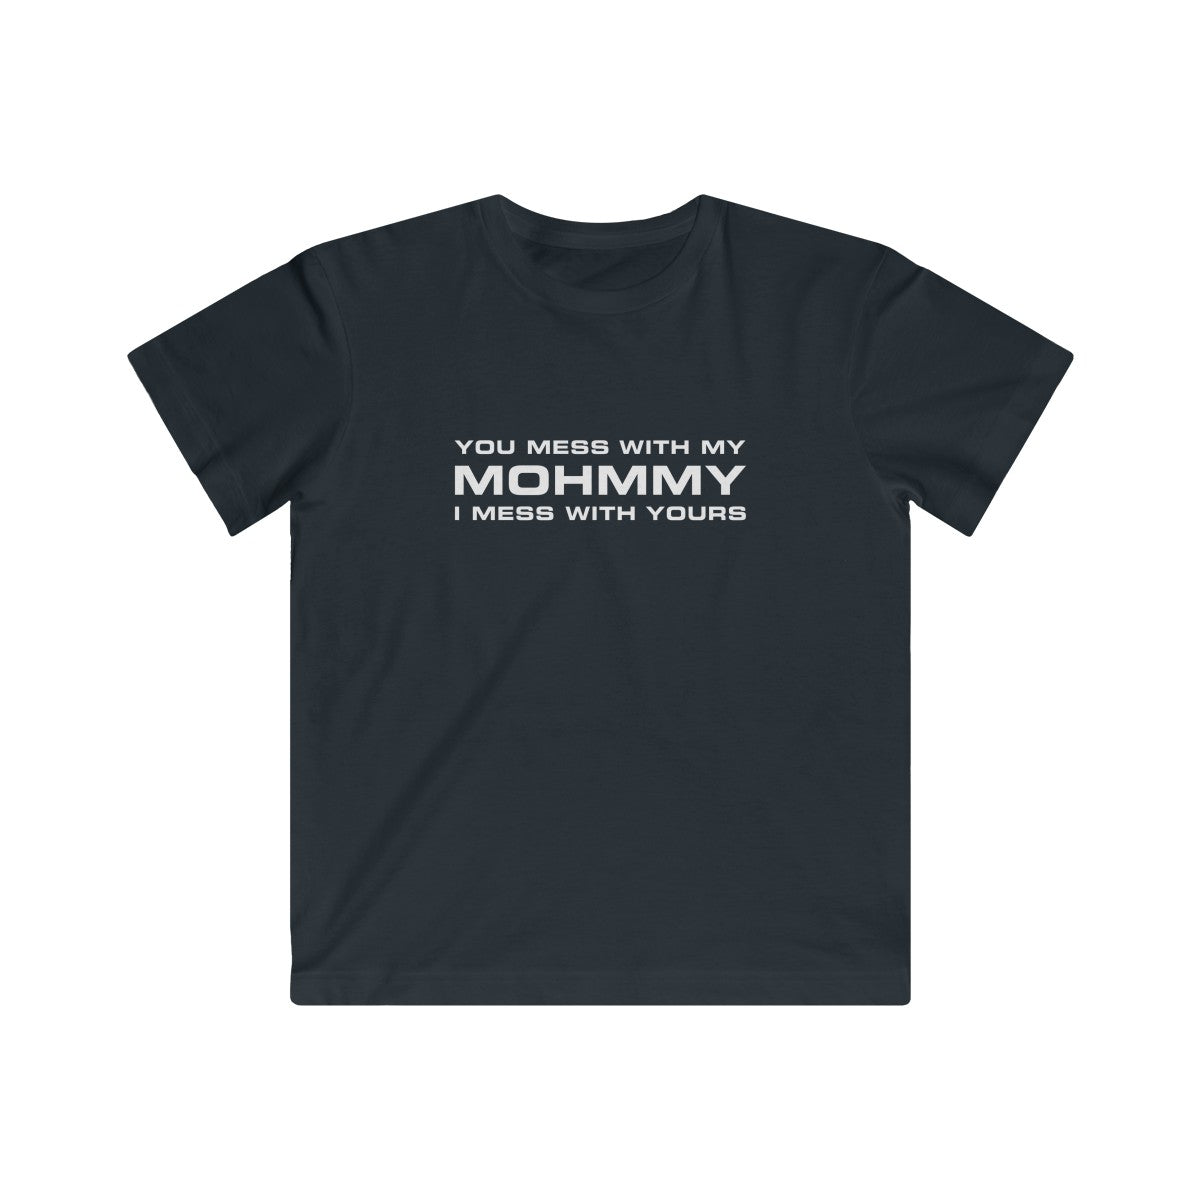 MOHMMY . You Mess With My Mohmmy . White Print . Kids Fine Jersey Tee